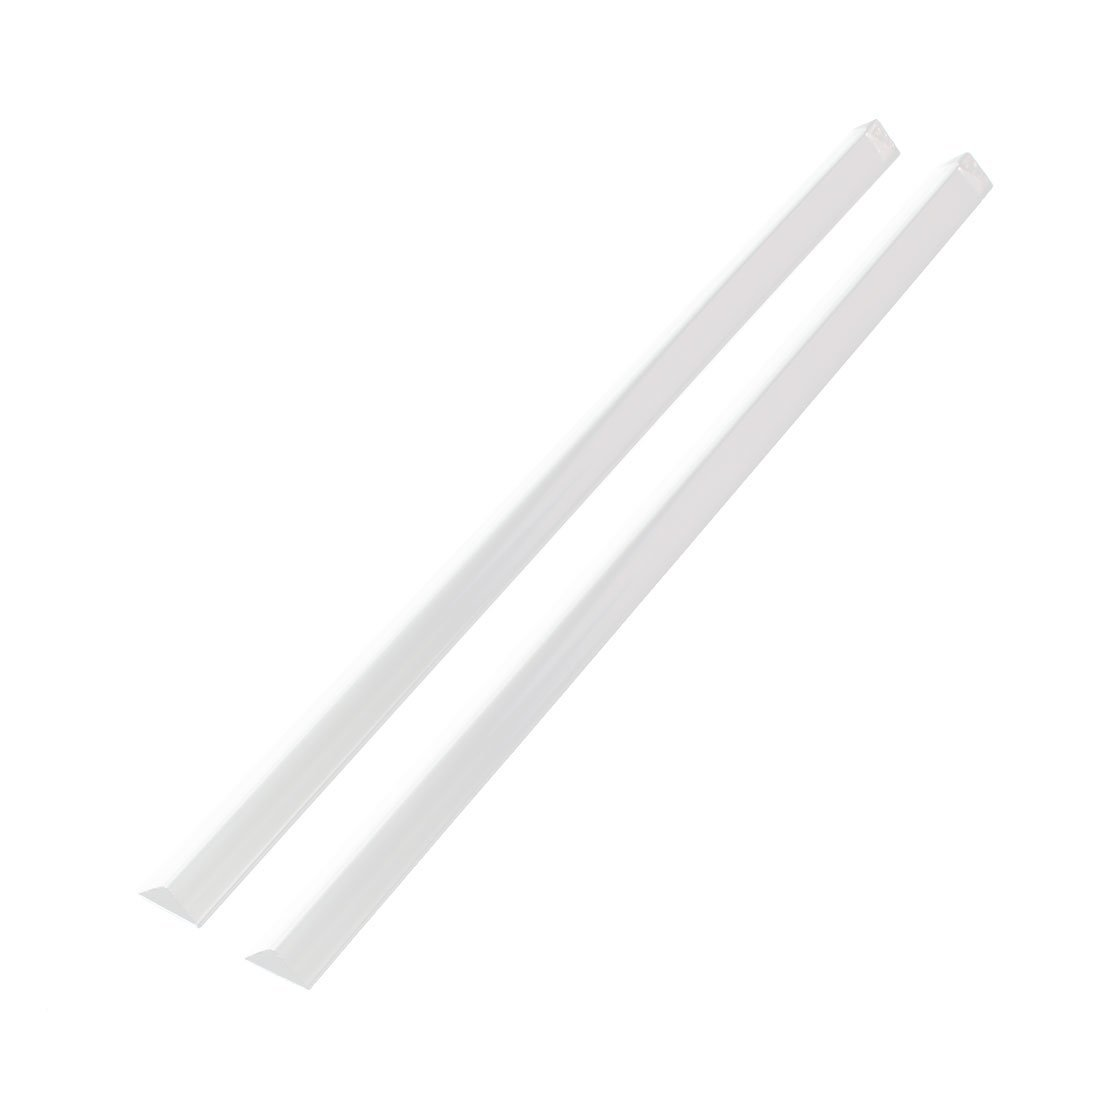 uxcell 10mmx10mmx250mm Triangular Shape Solid PMMA Bars Acrylic Rods Clear 2pcs